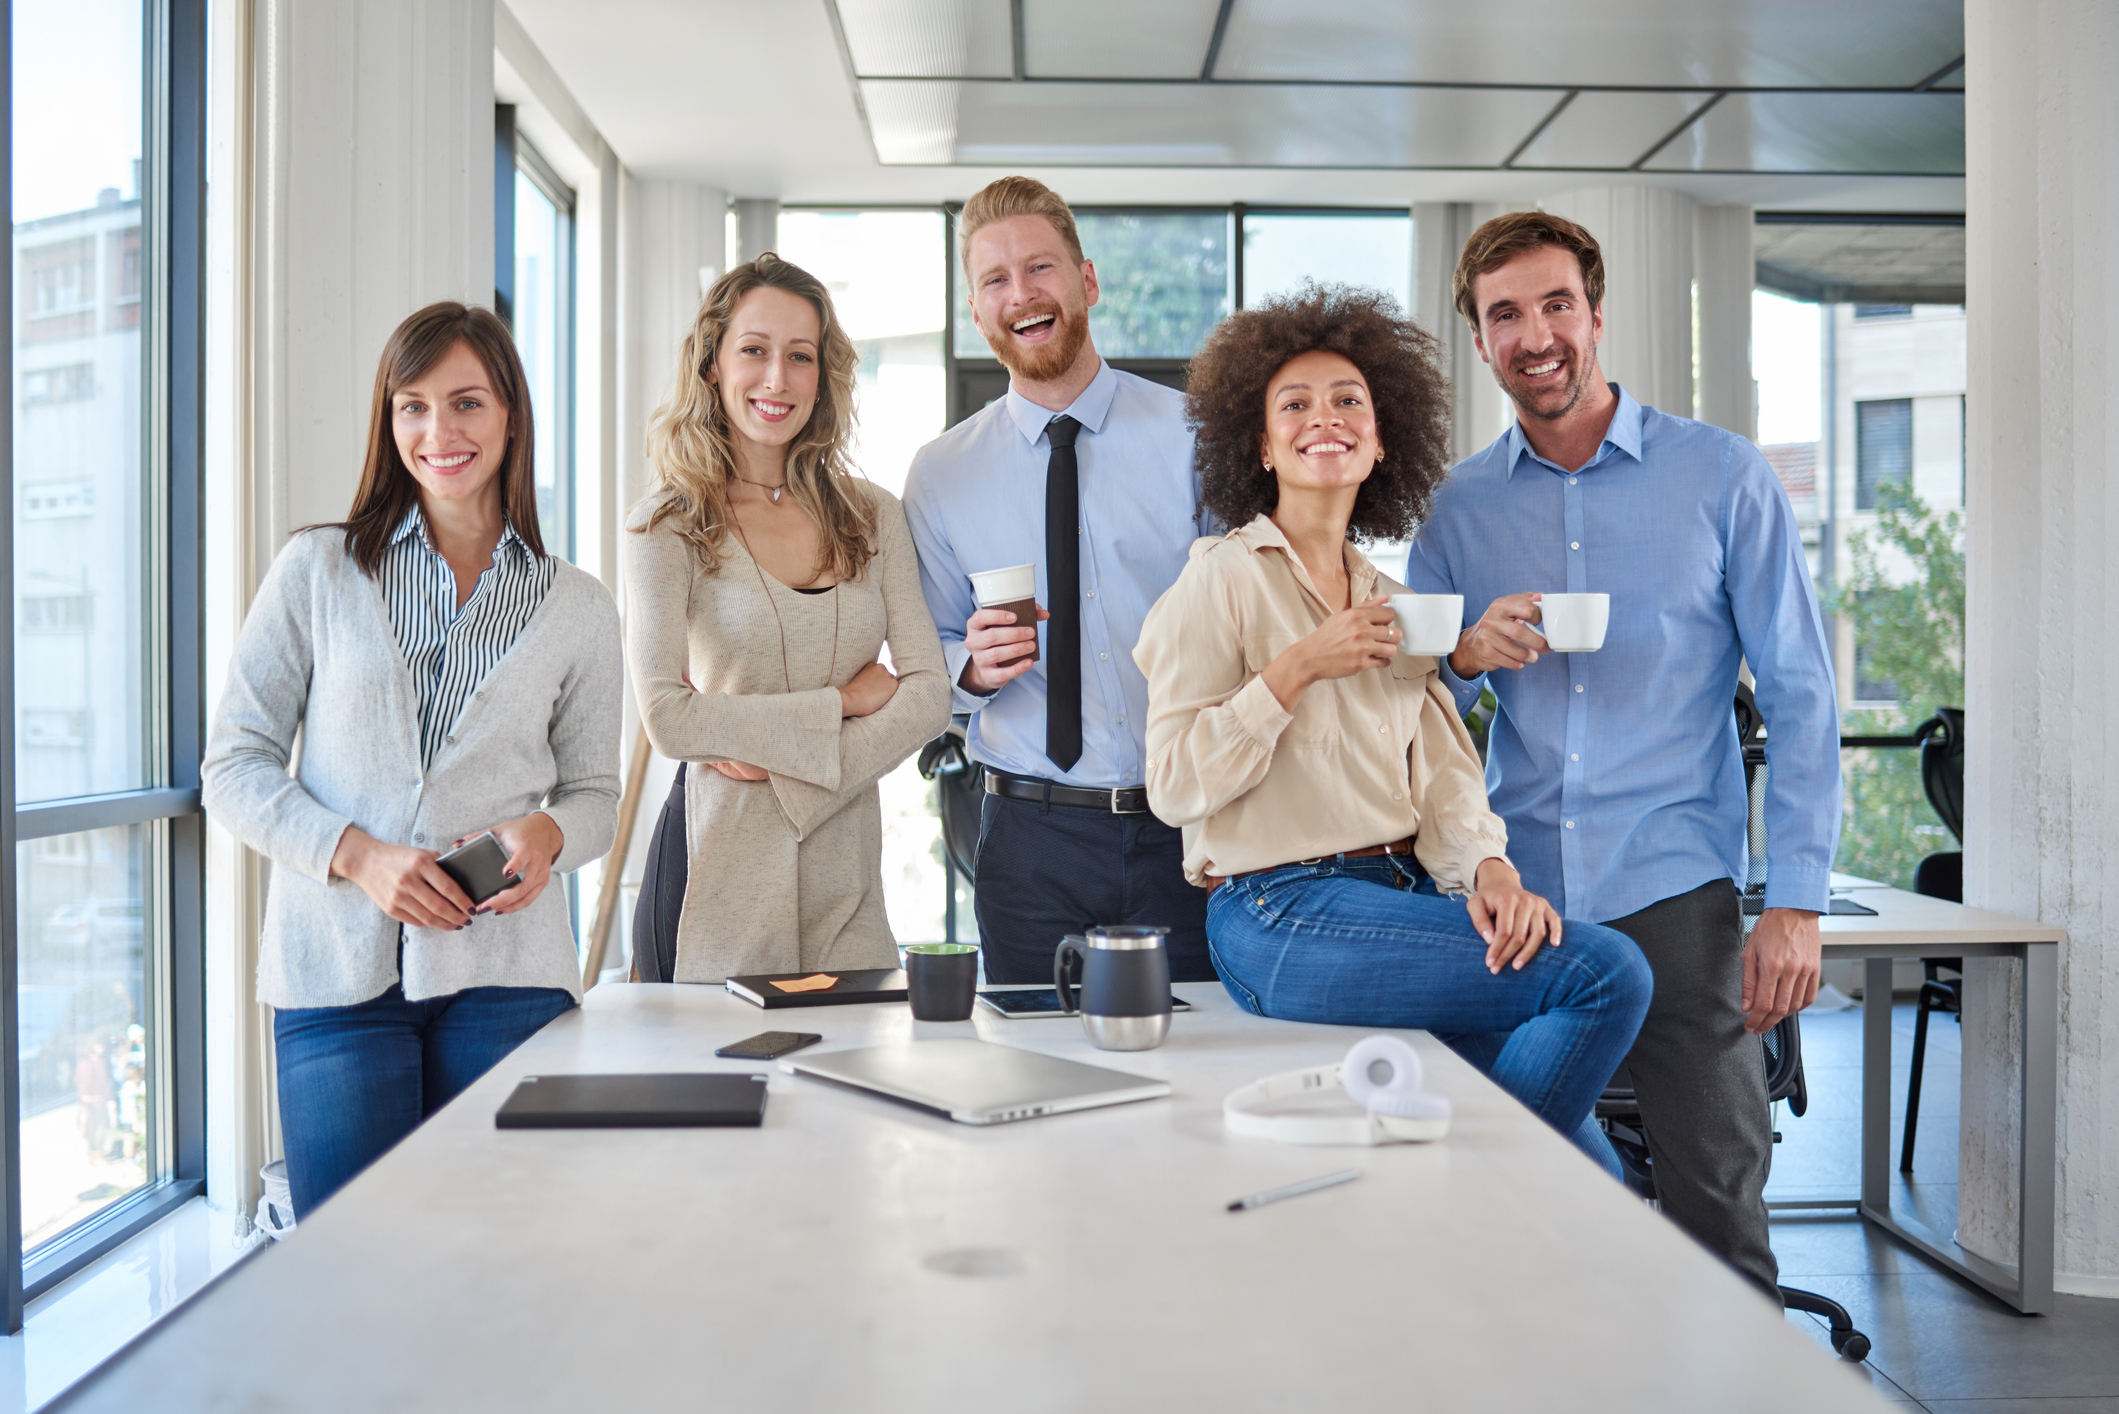 personnel franchise - employees gathered in office cheerful